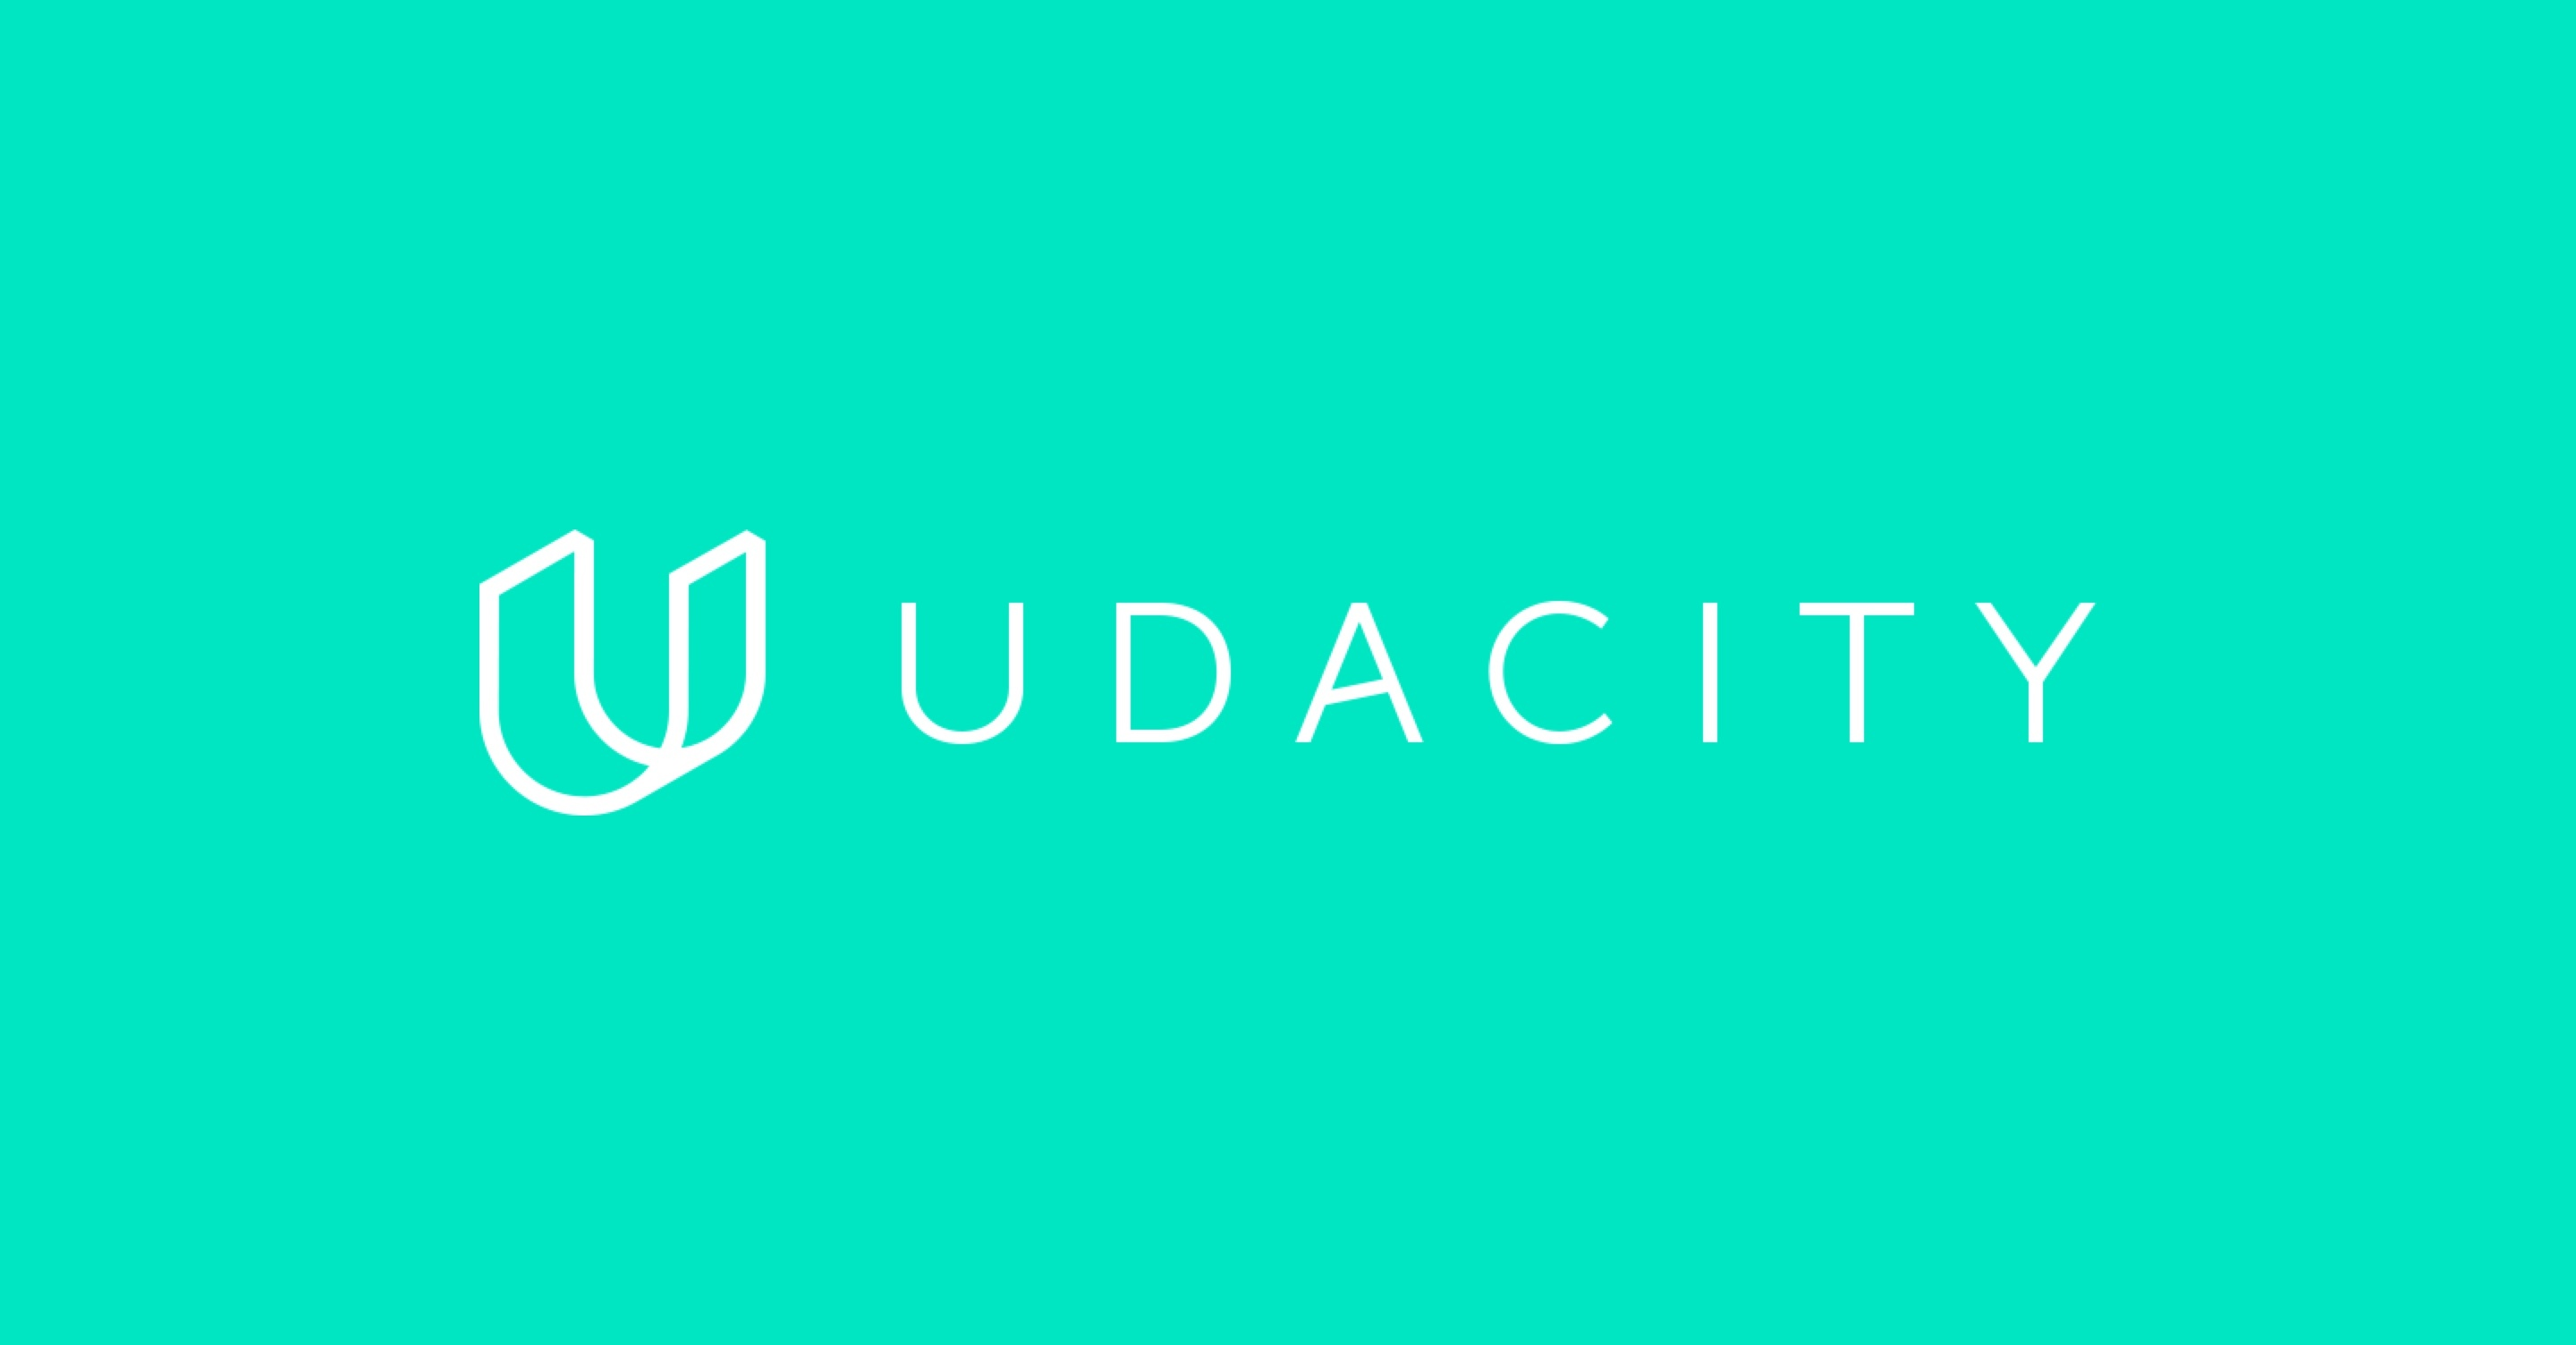 Education Startup Udacity Uses Smart CRM to Build Their Sales Process